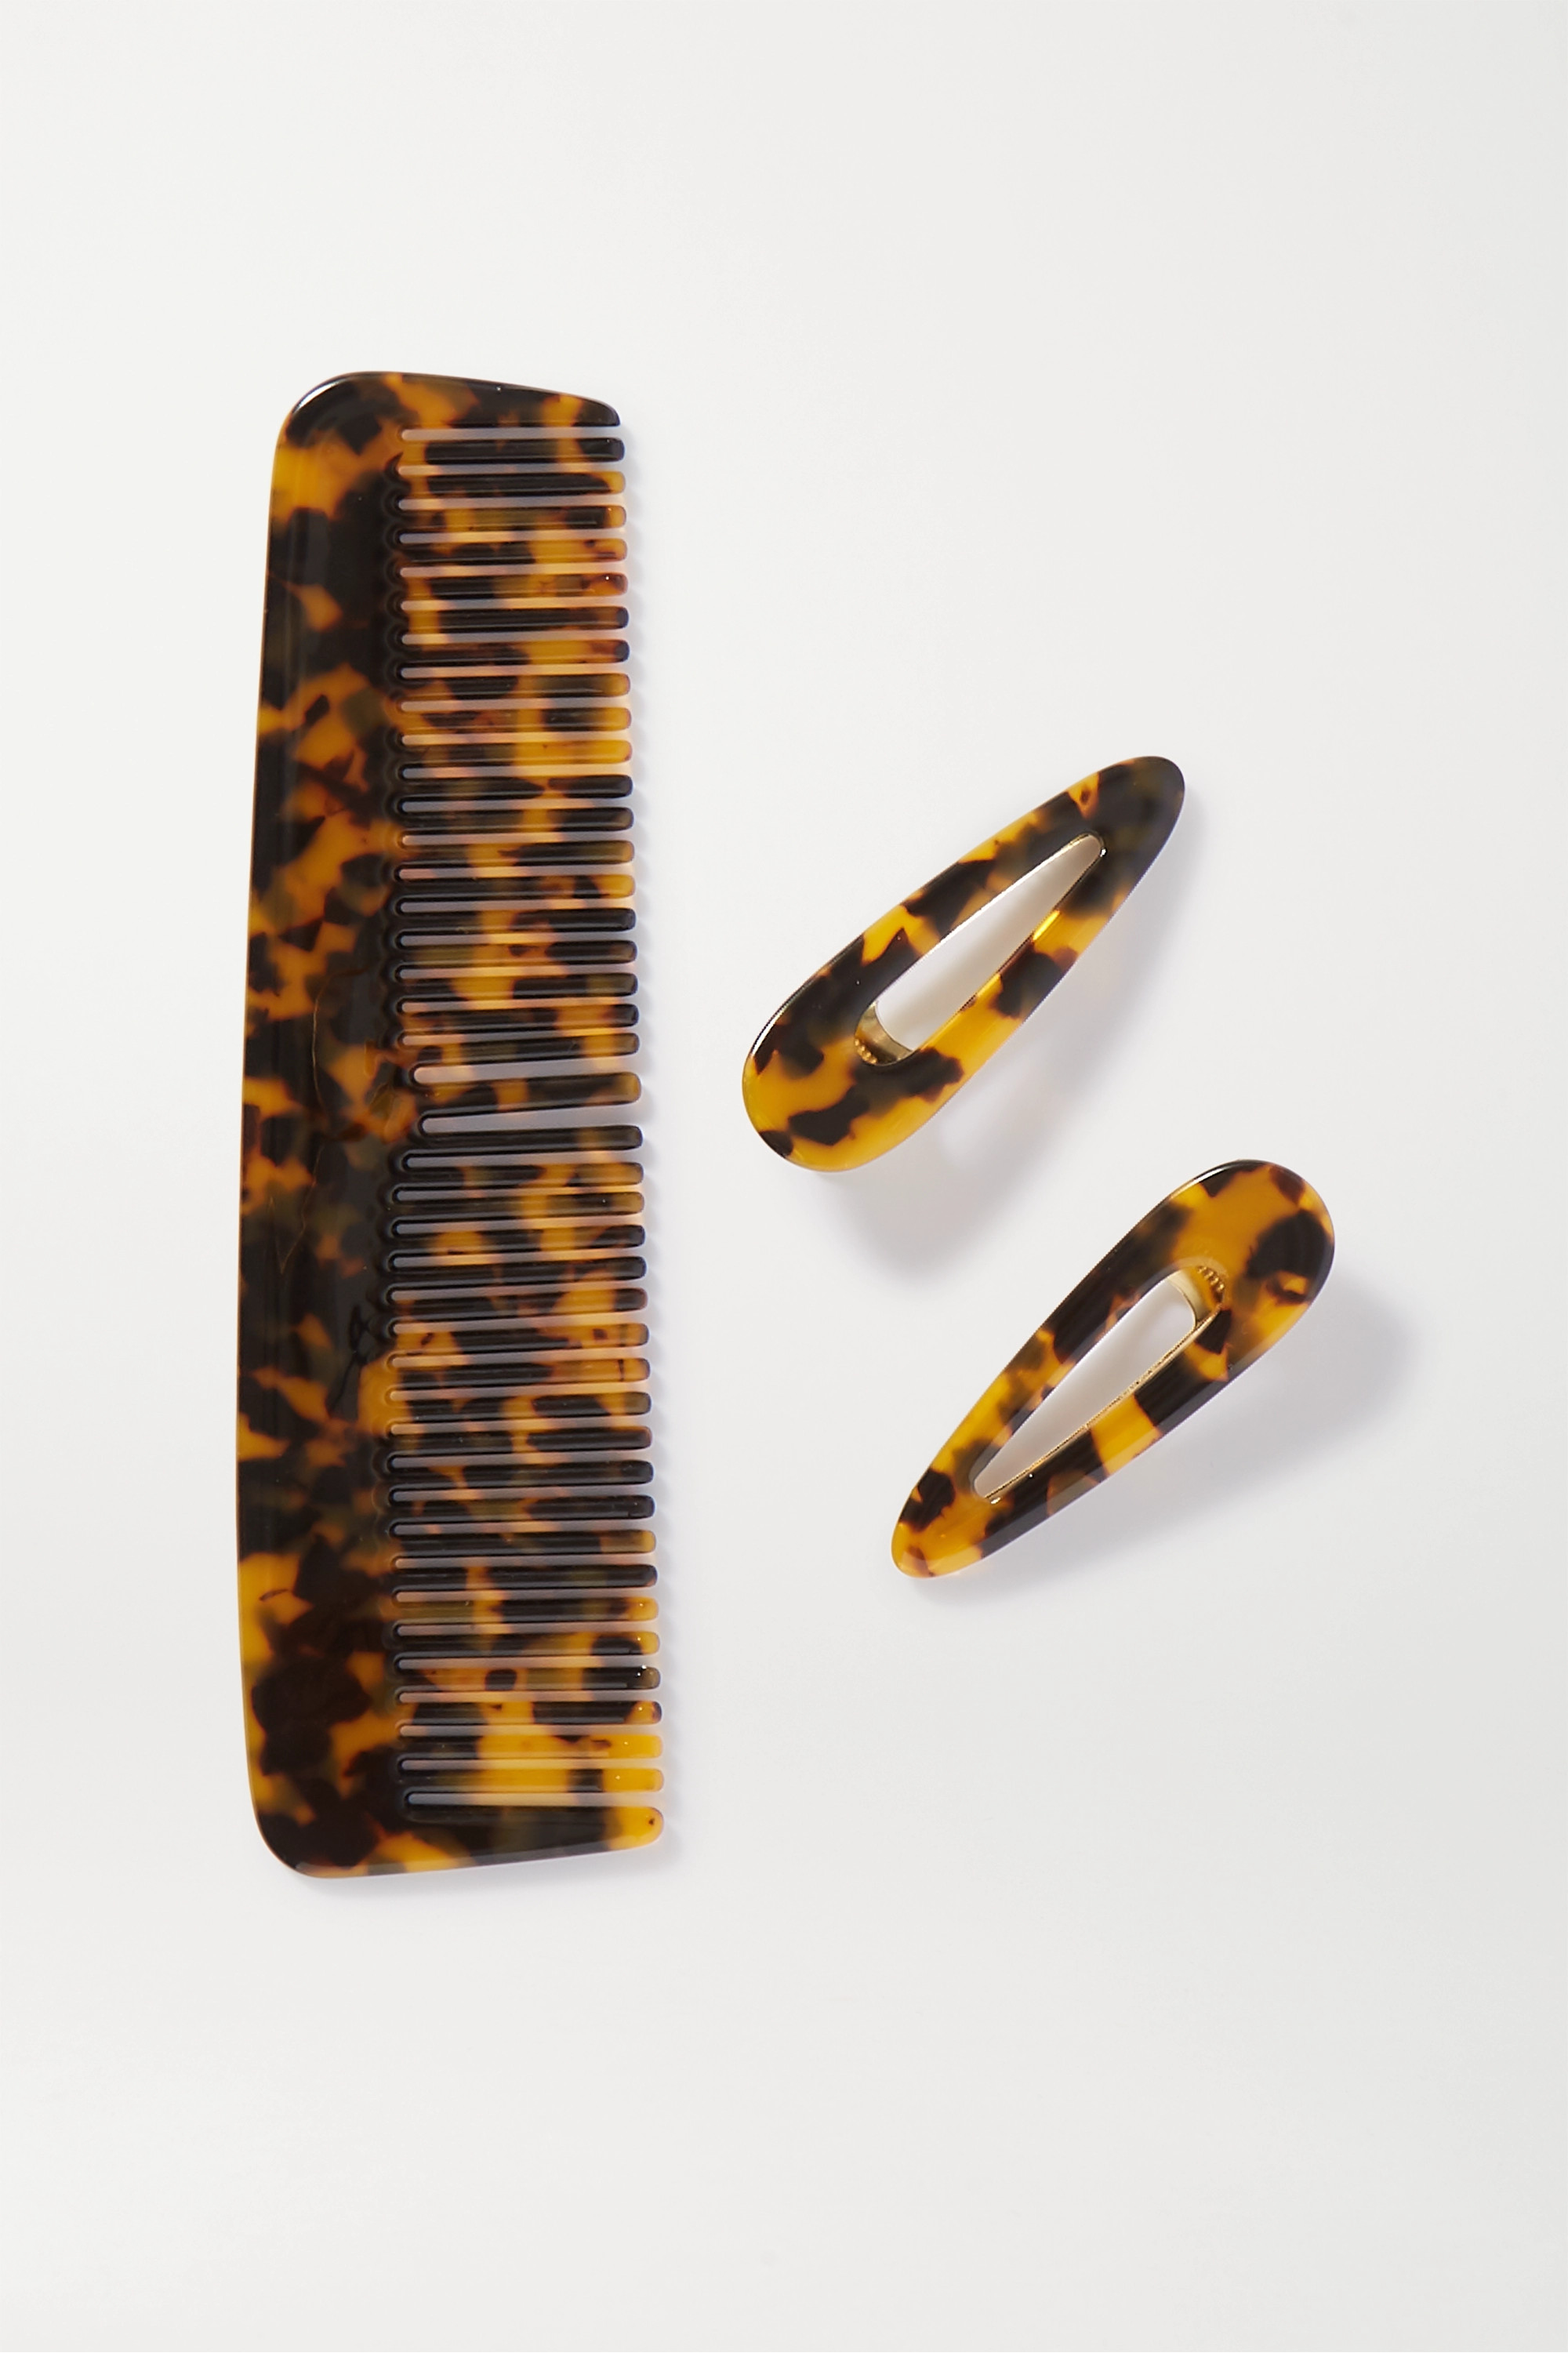 Valet Willa and Kelly tortoiseshell resin comb and hair clips set